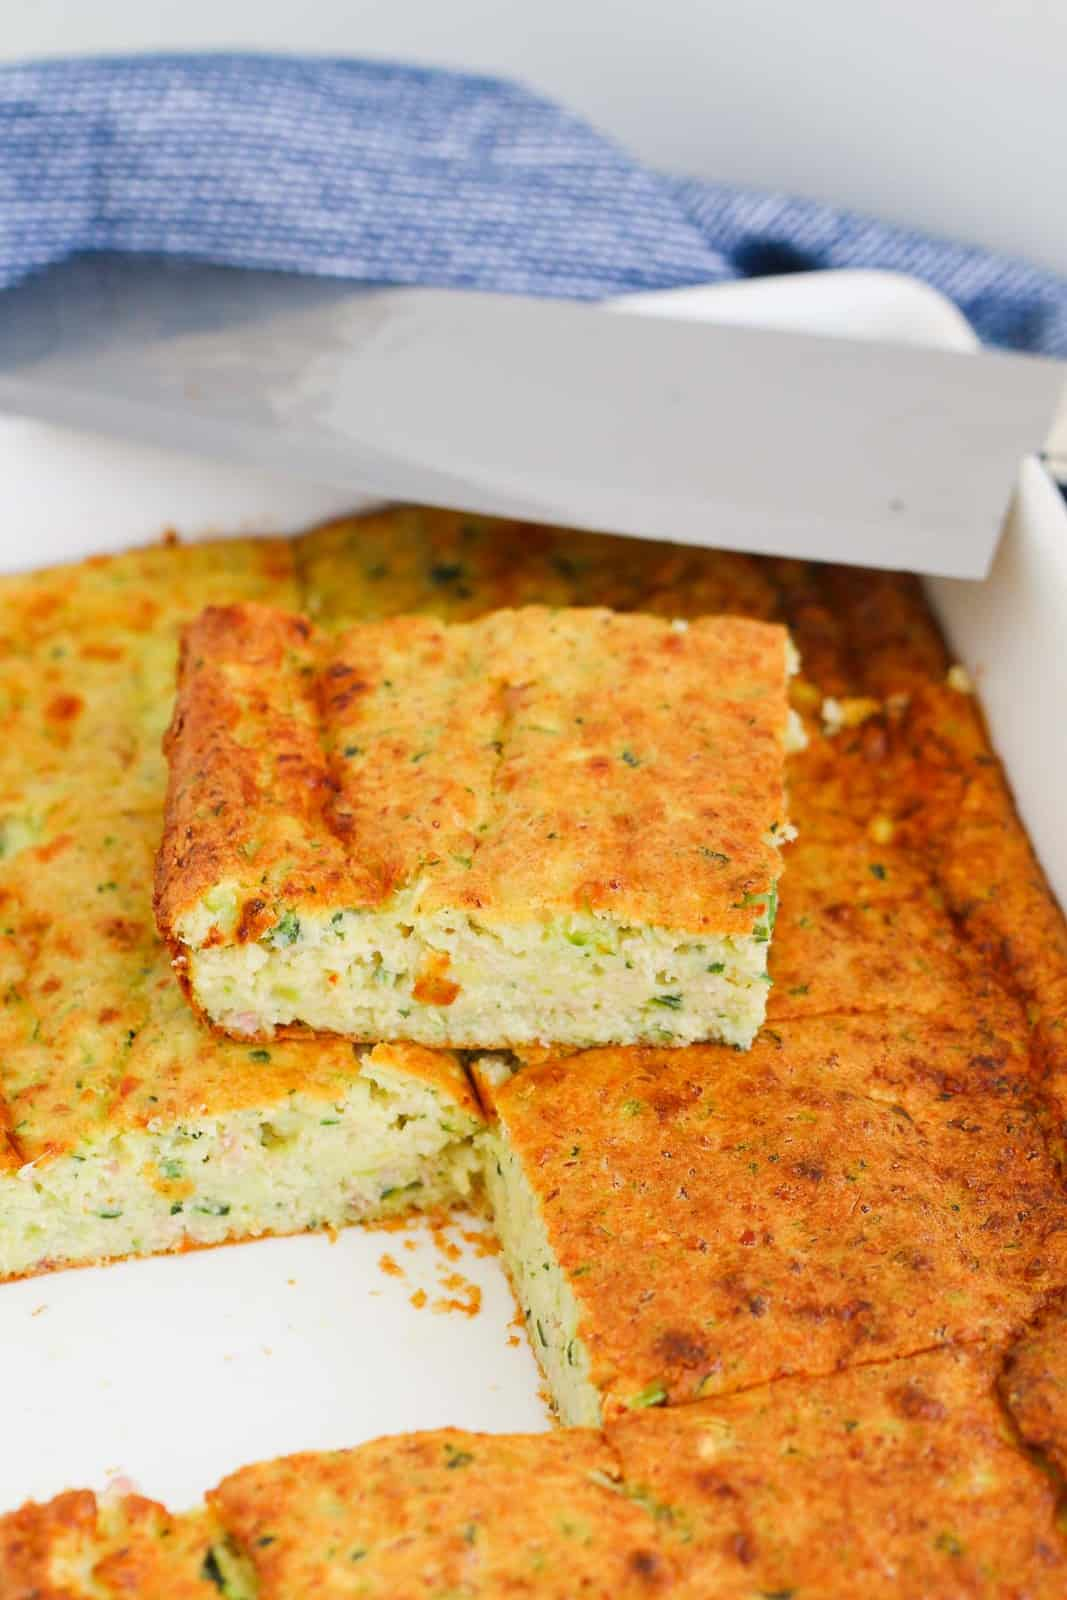 One slice of zucchini and bacon slice taken out of a white baking tray.